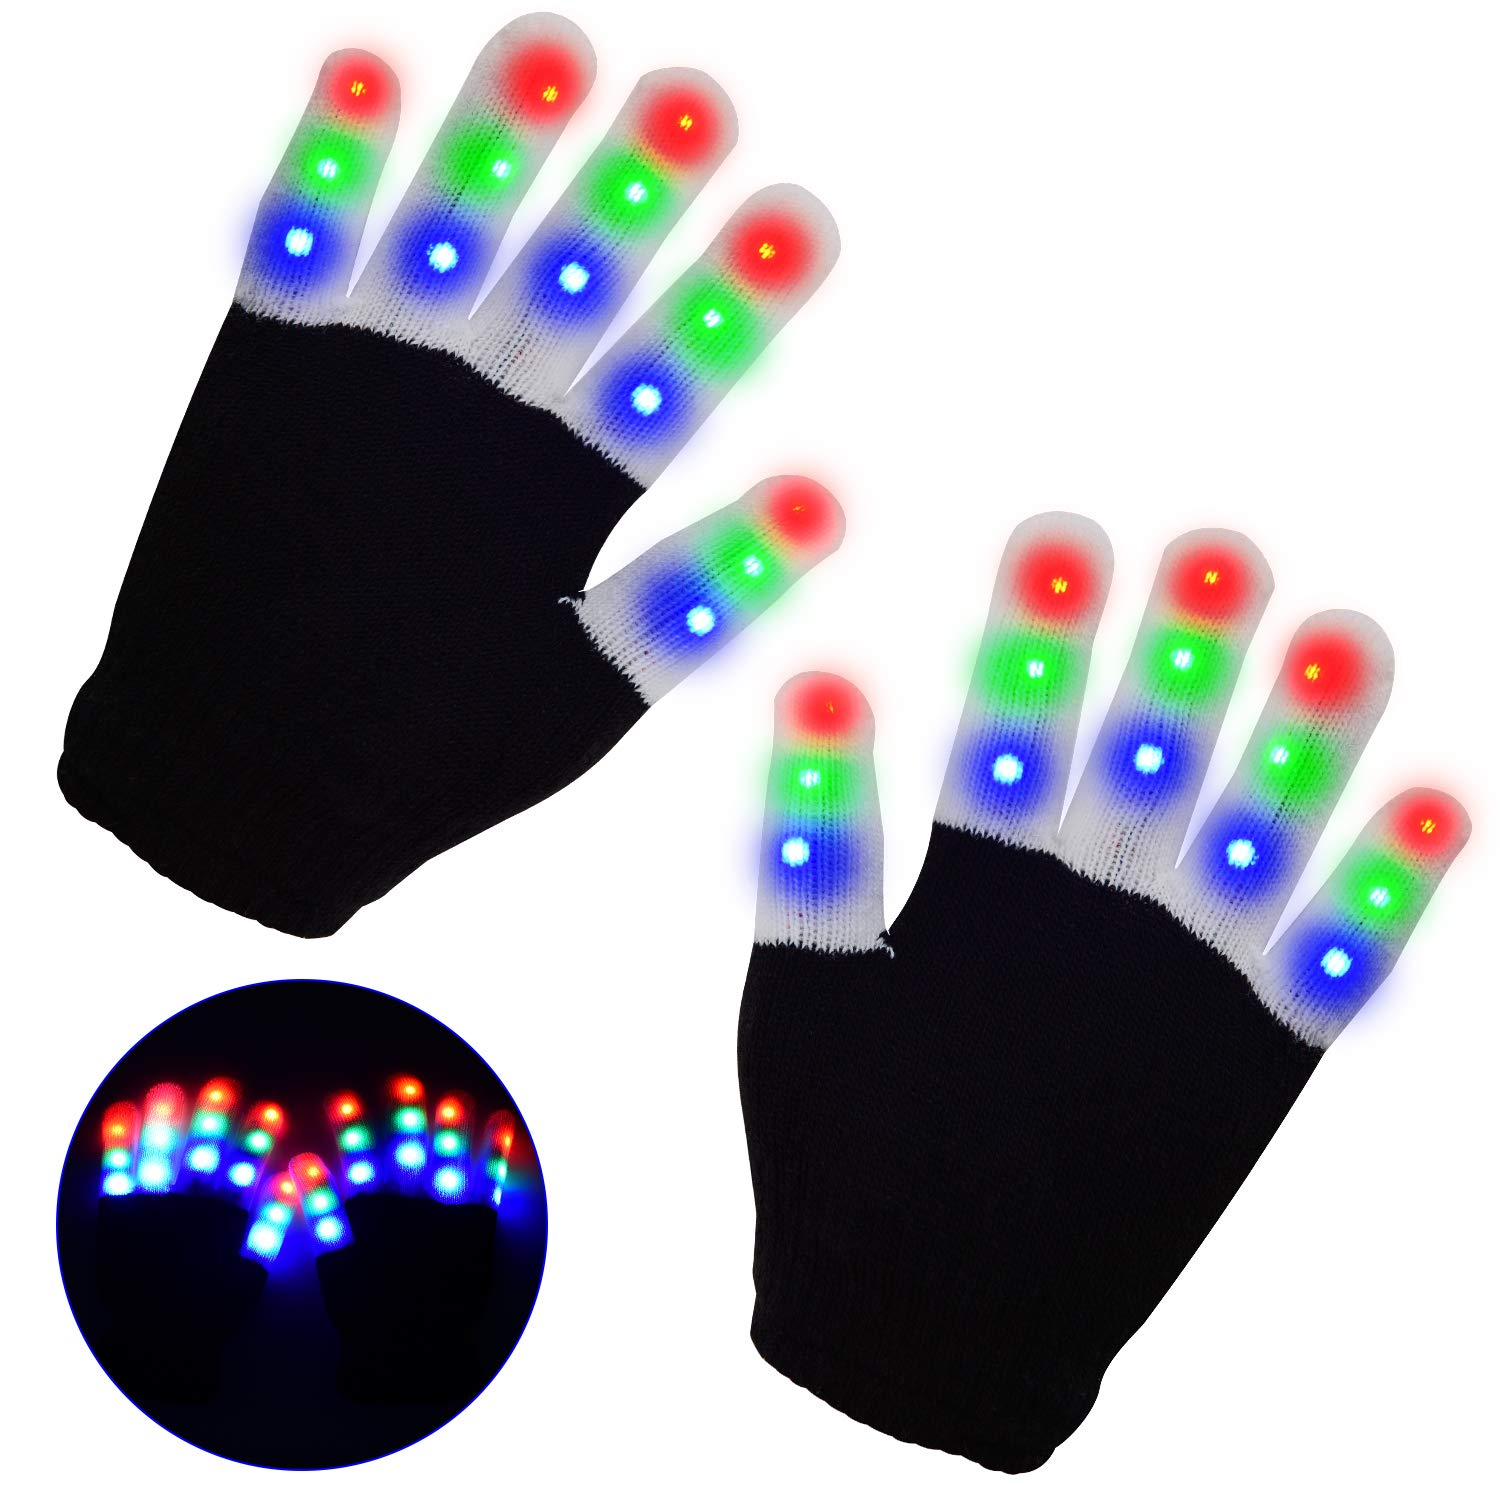 LSXD LED Gloves for Kids, Flashing Finger Light Kids Gloves Toys for Halloween, Party, Christmas, Birthday Gift